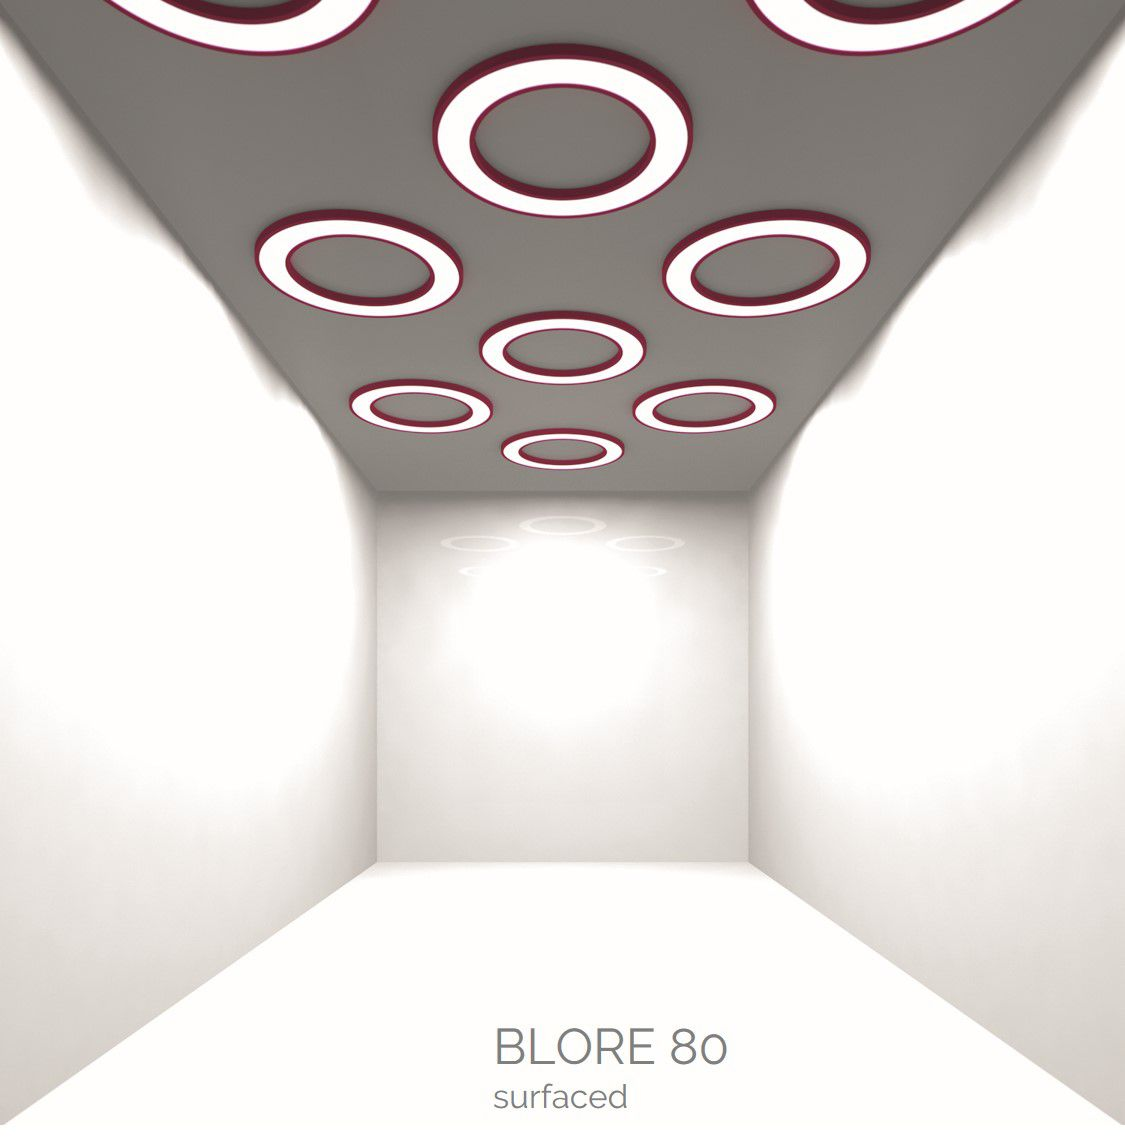 blore 80 opbouw armatuur ring 1200x80mm 4000k 6323lm 70w fix